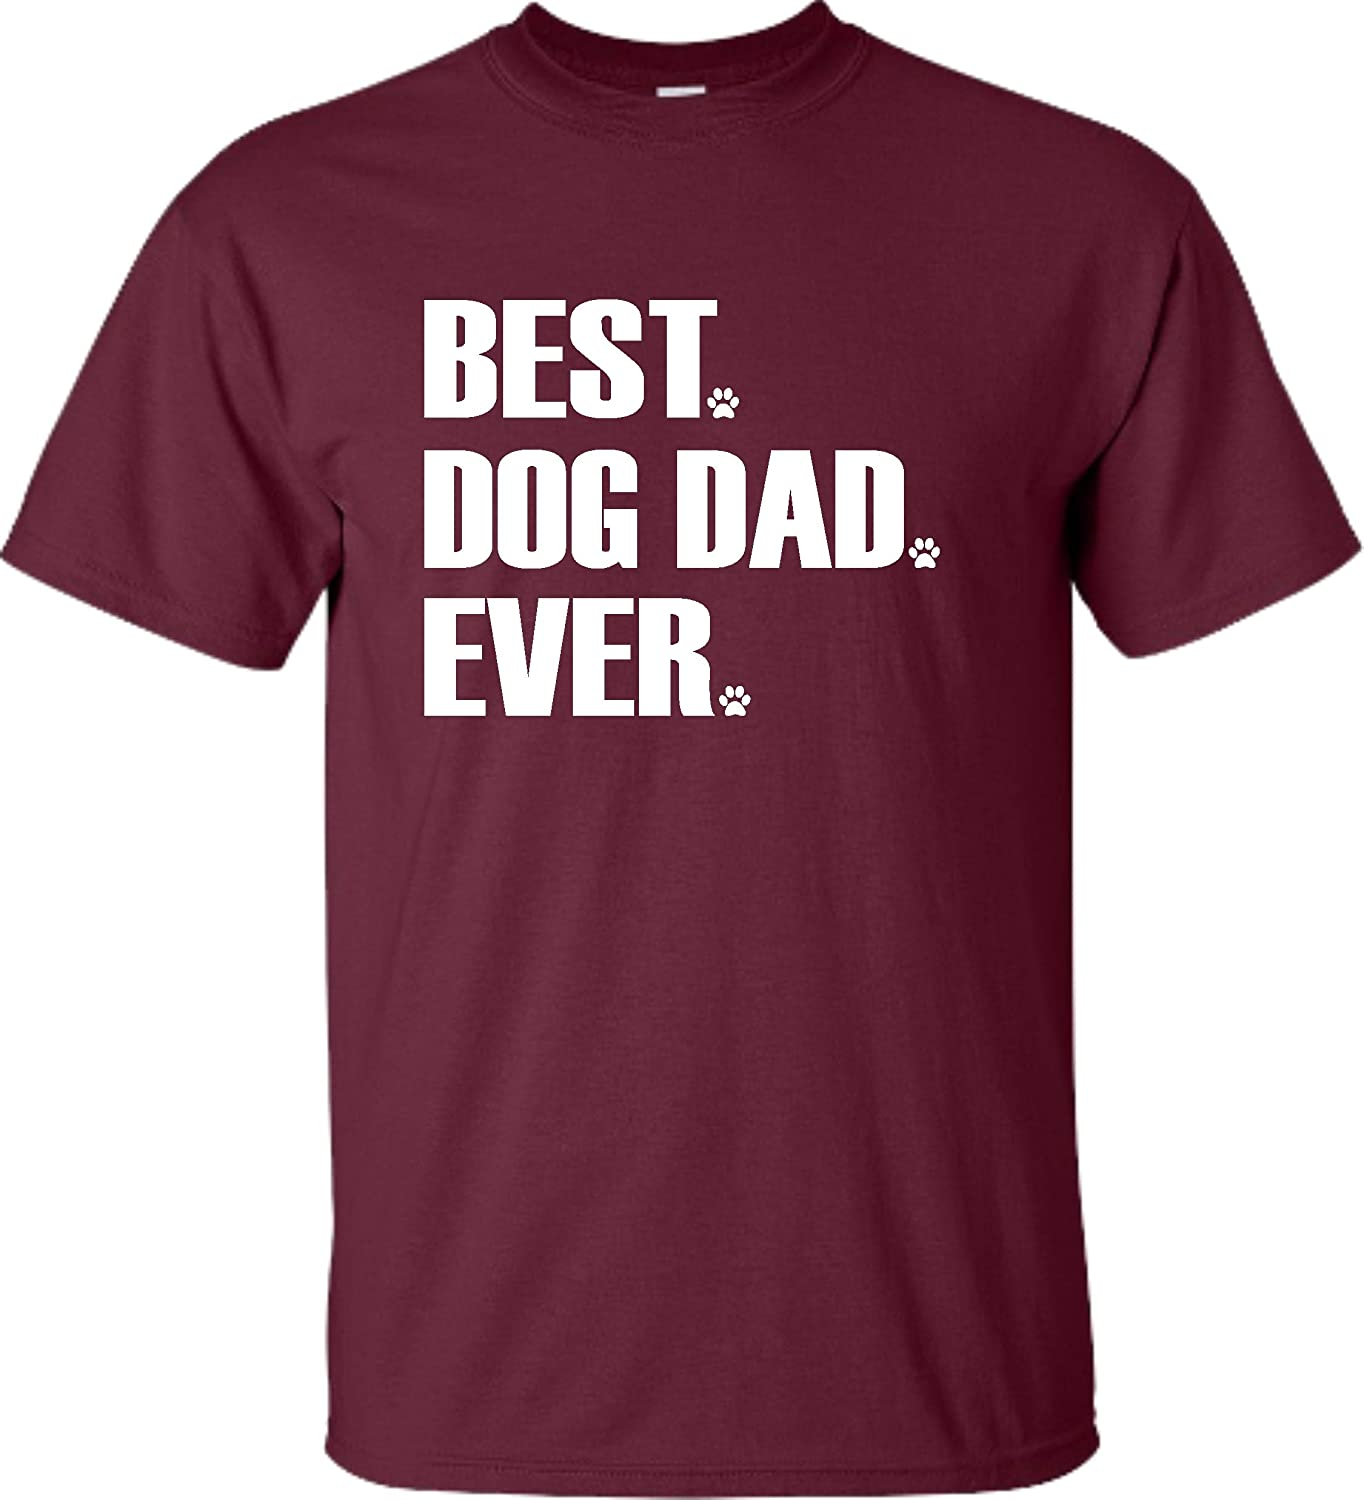 Go All Out Adult Best Dog Dad Ever Funny T-Shirt